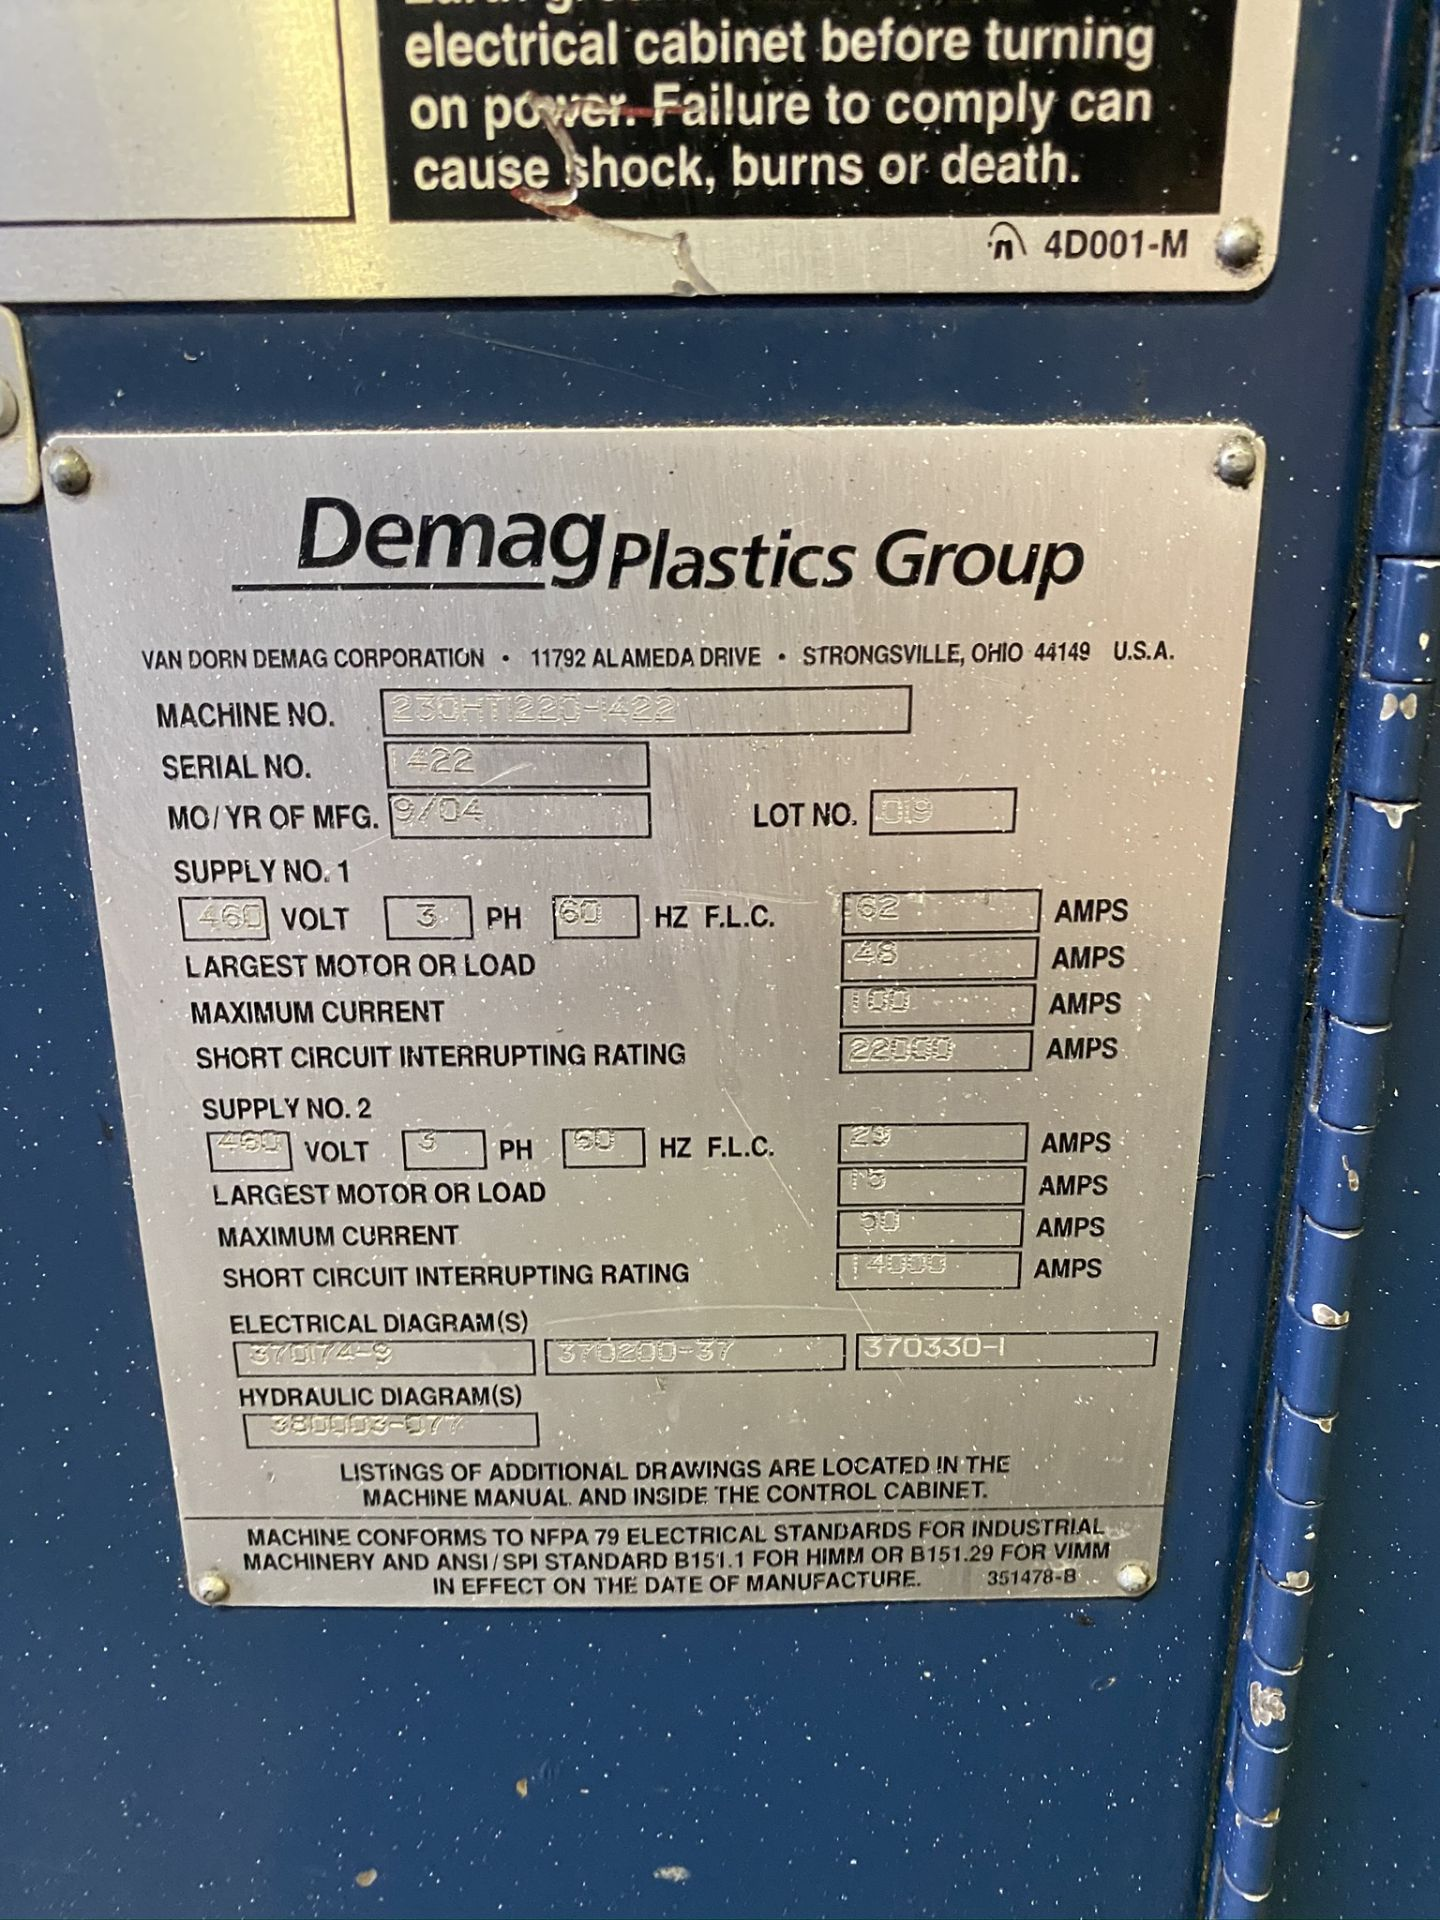 Lot 14 - 2004 VAN DORN DEMAG 230 TON, MODEL 230HT-1220-1422, 25.4 OZ SHOT SIZE